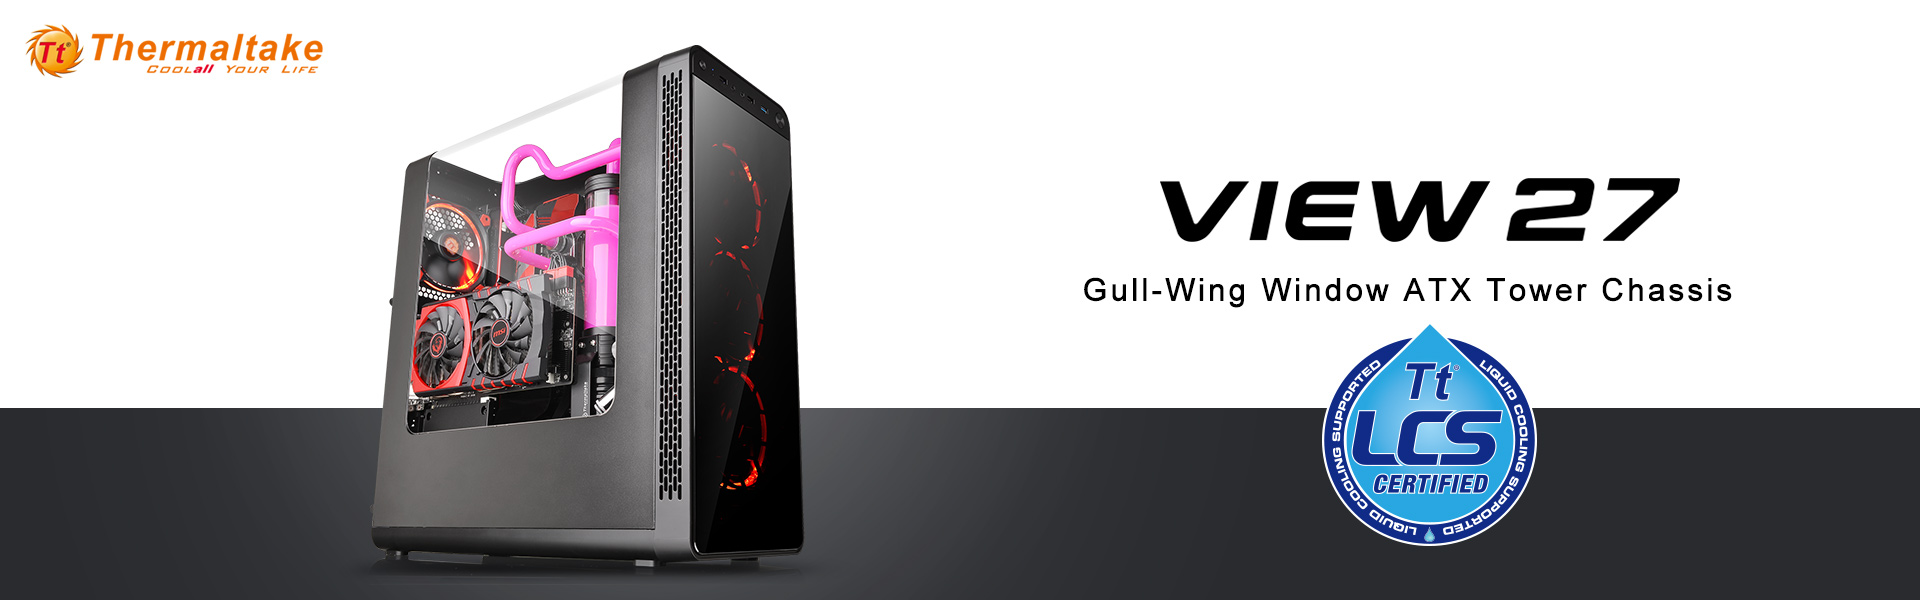 Thermaltake View27 Gull-Wing Window ATX Mid Tower Chassis _1